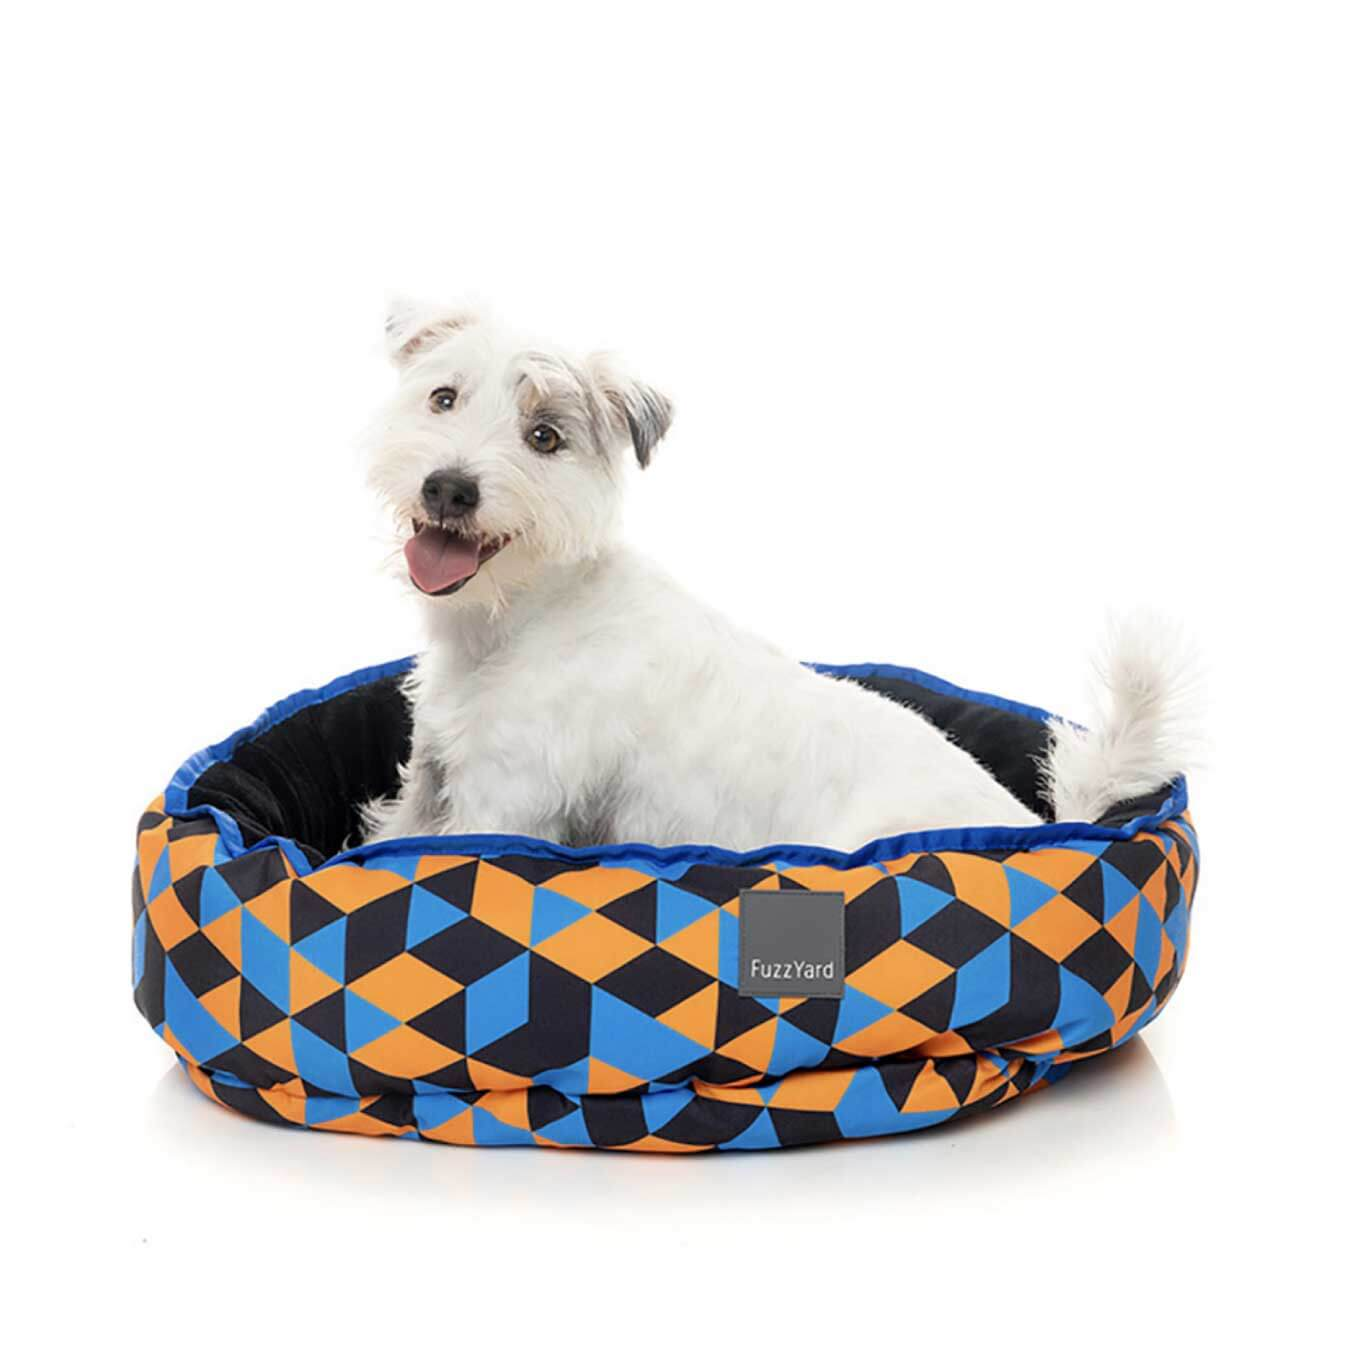 FuzzYard Amsterdam Reversible Pet Bed - Shop Vanillapup Online Pet Shop